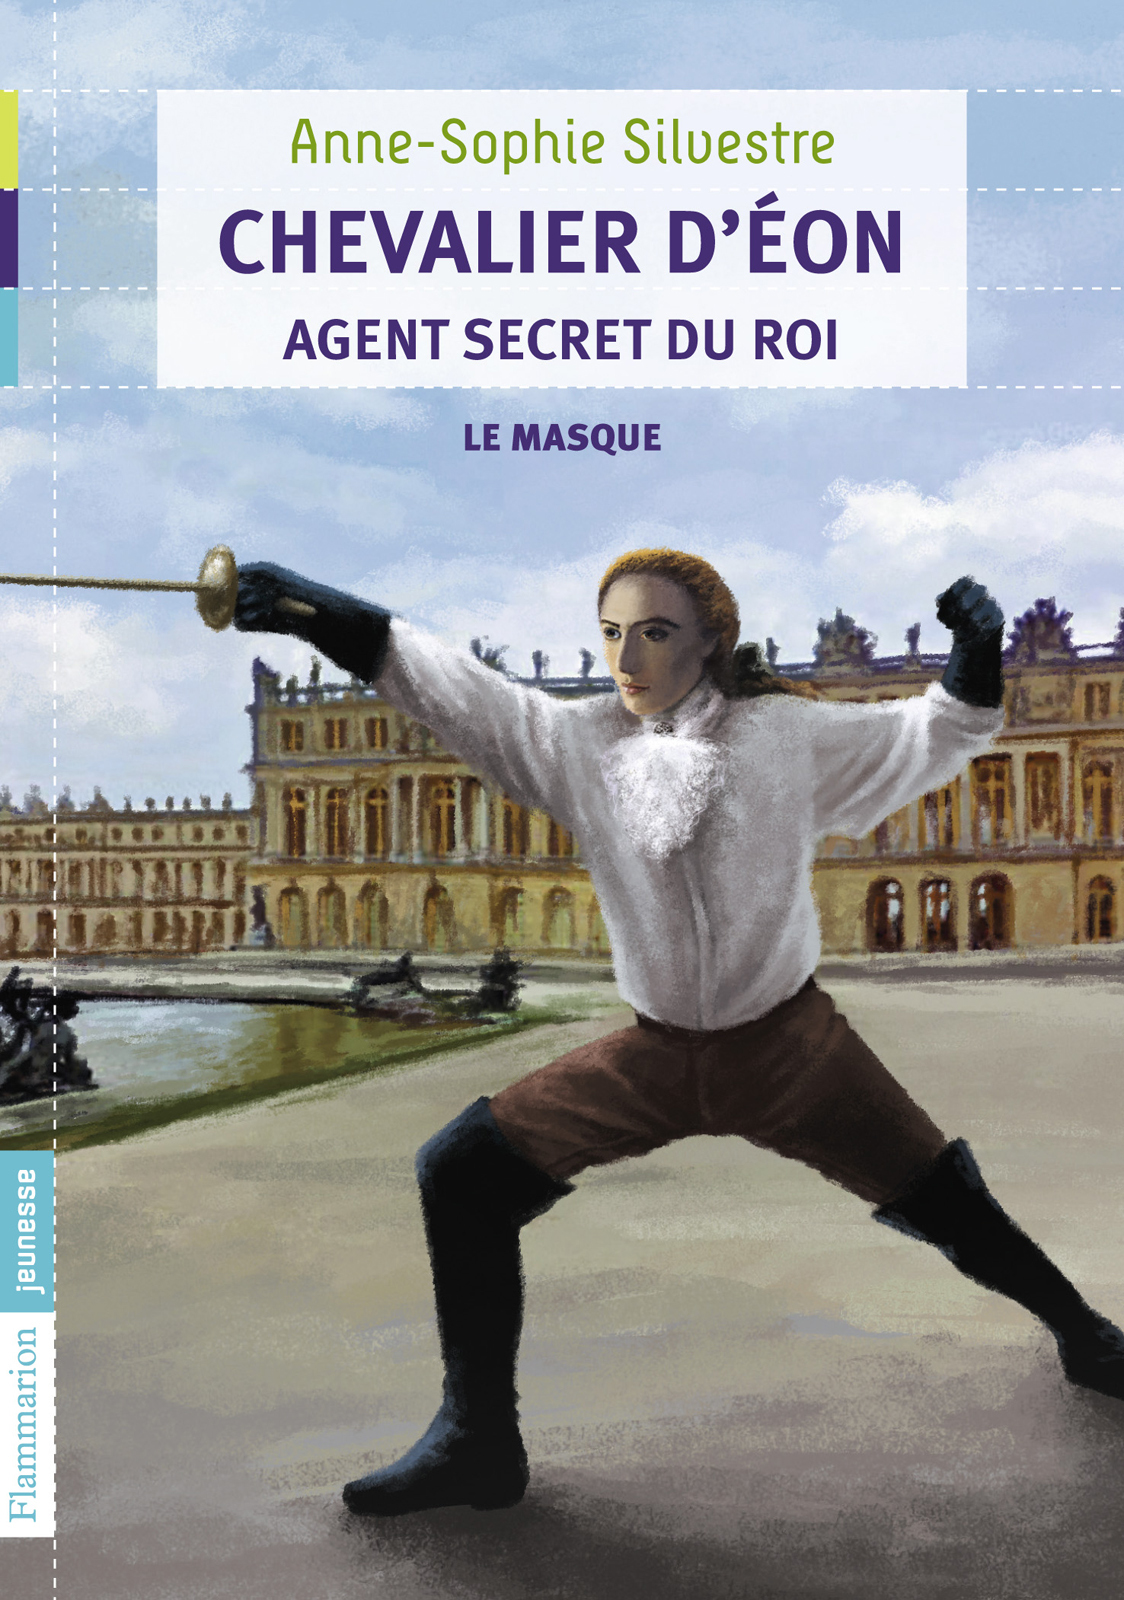 Chevalier d'Éon, agent secret du Roi (Tome 1) - Le masque